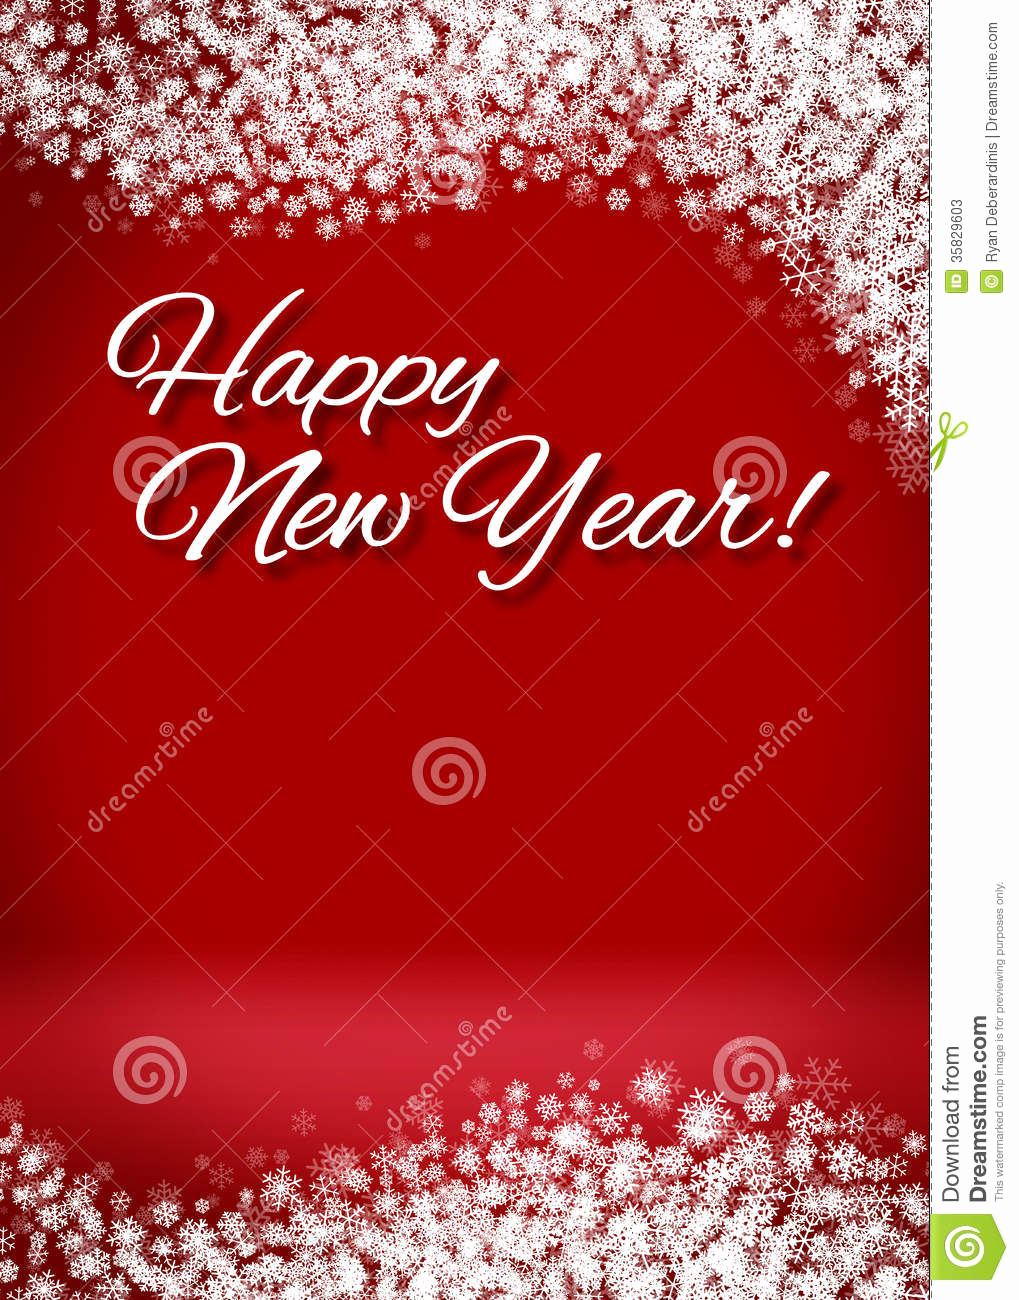 New Year Card Template Awesome Snowy Happy New Year 3d Card Background Stock S